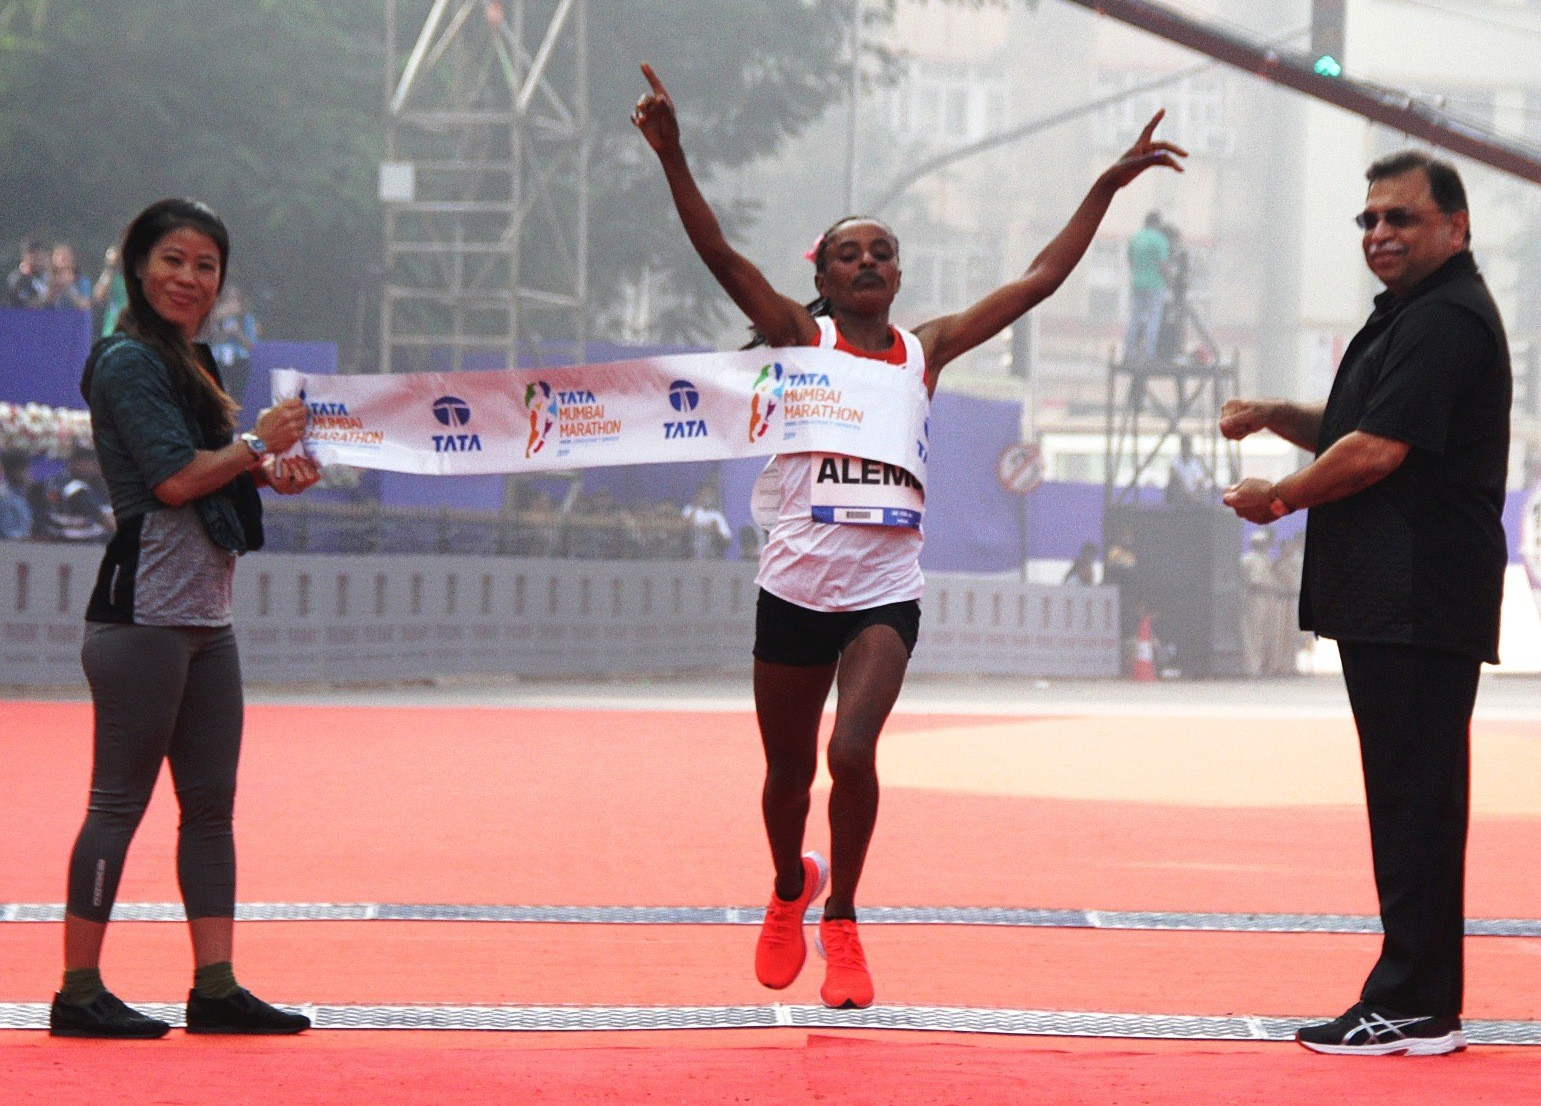 Ethiopia's Worknesh Alemu wins at the Tata Mumbai Marathon 2019 / Photo credit Procam International